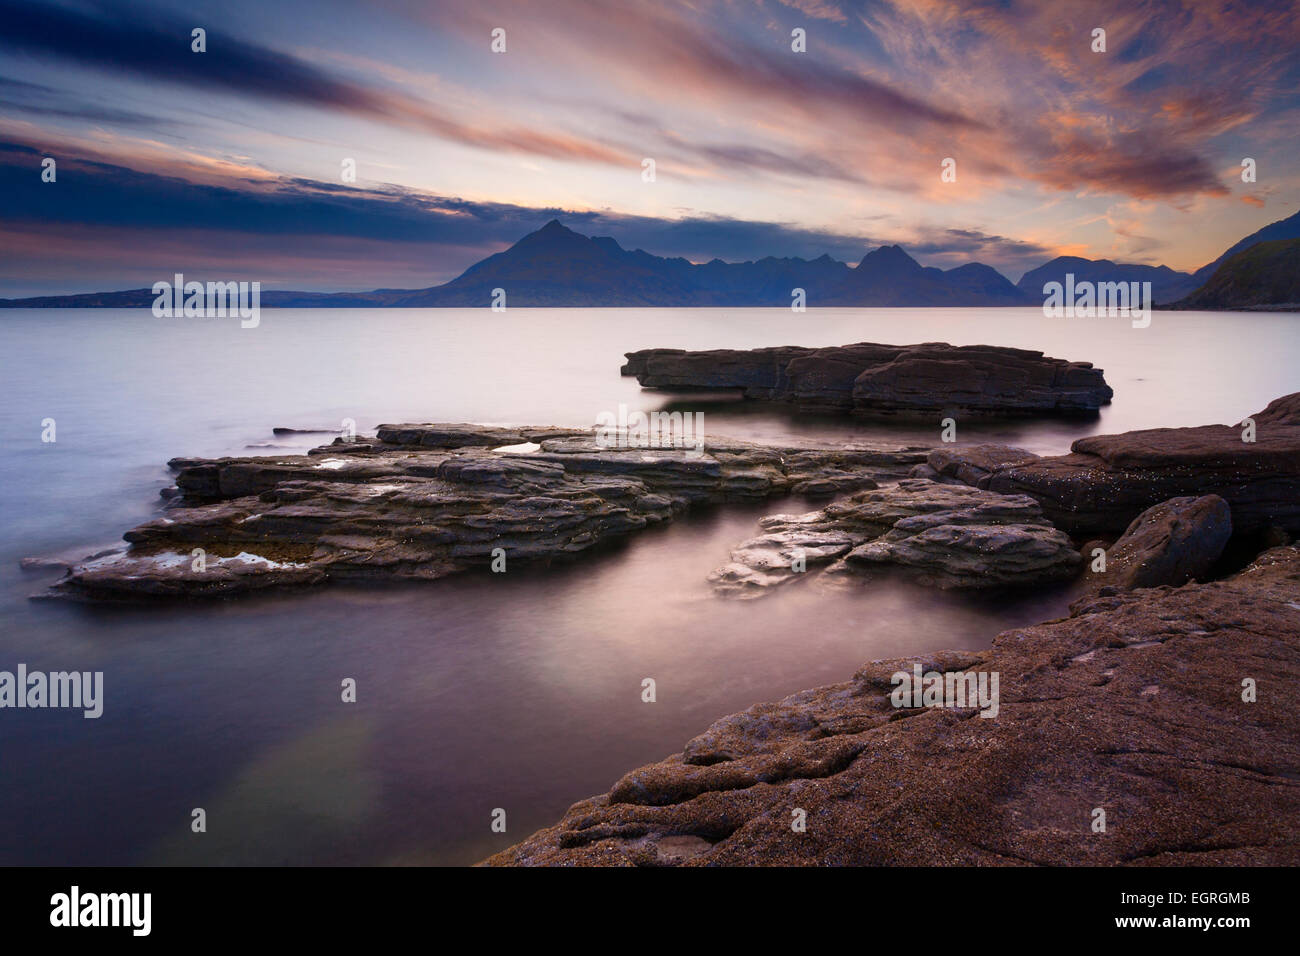 Classic view over the Black Cuillin hills from Elgol, Isle of Skye. This was taken just after sunset. - Stock Image